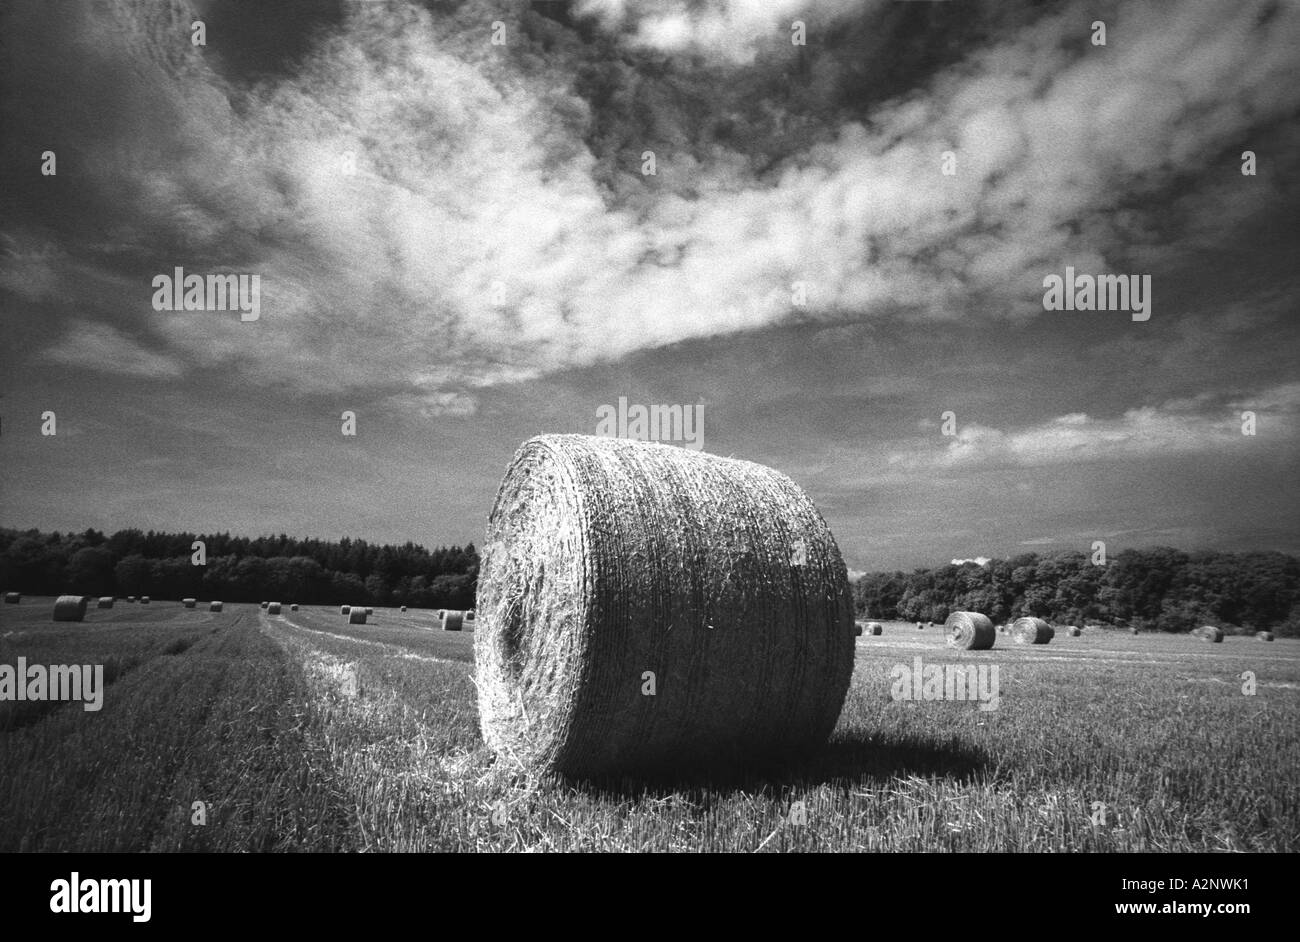 Bringing in the harvest. Hay bales drying under balmy skies - Stock Image